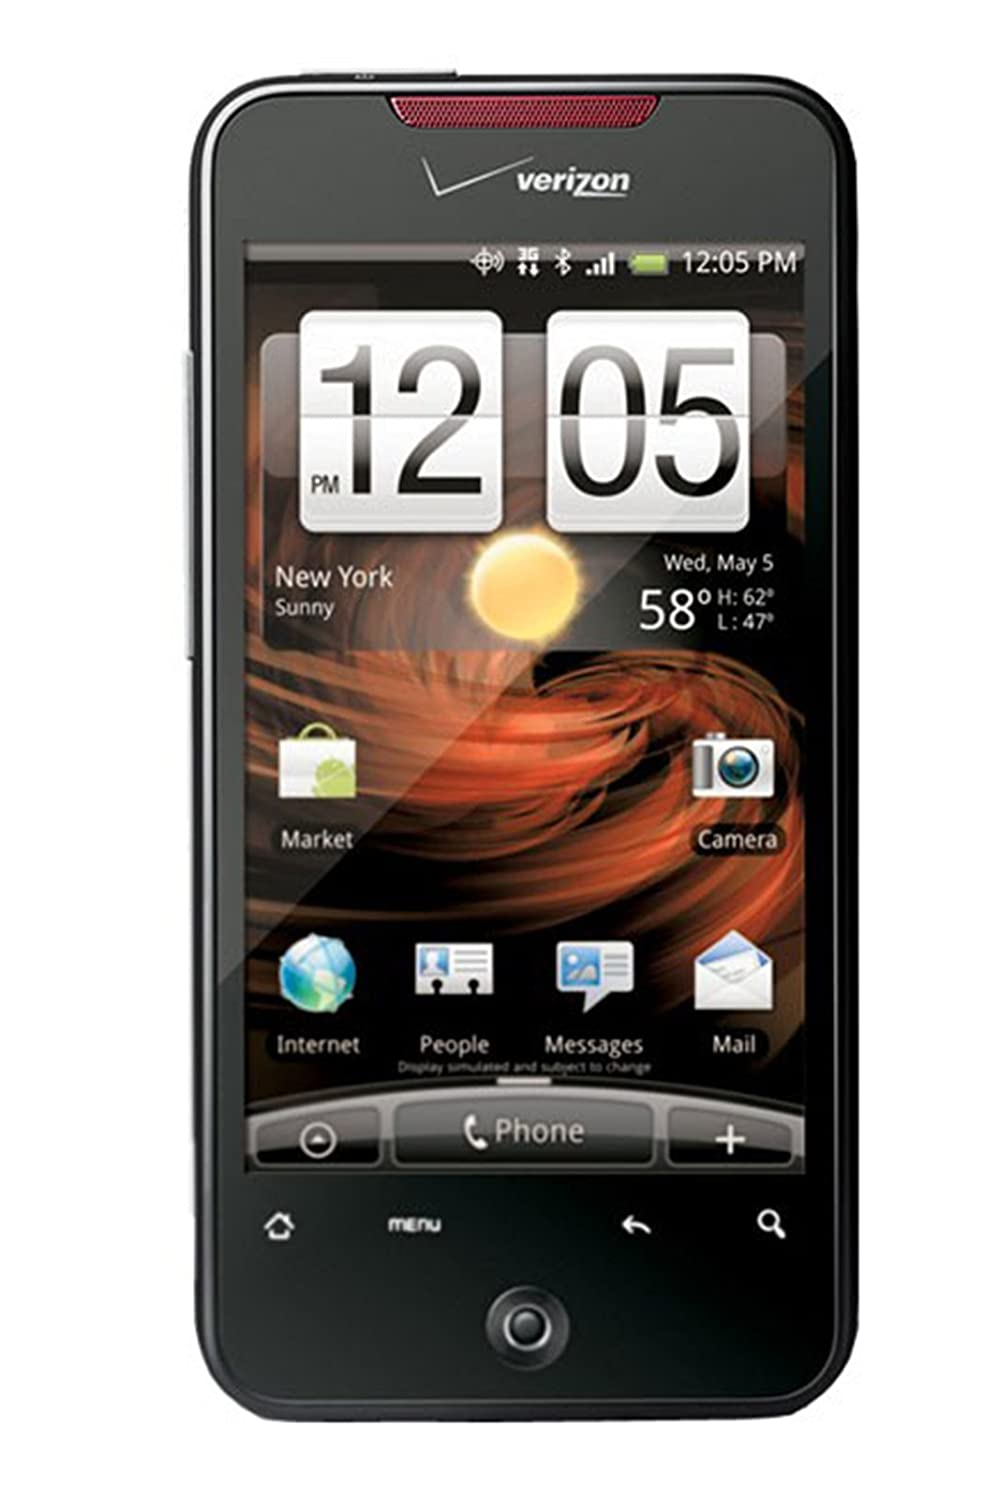 Amazon.com: HTC DROID INCREDIBLE ADR 6300 3G Android Phone Black (Verizon  Wireless): Cell Phones & Accessories